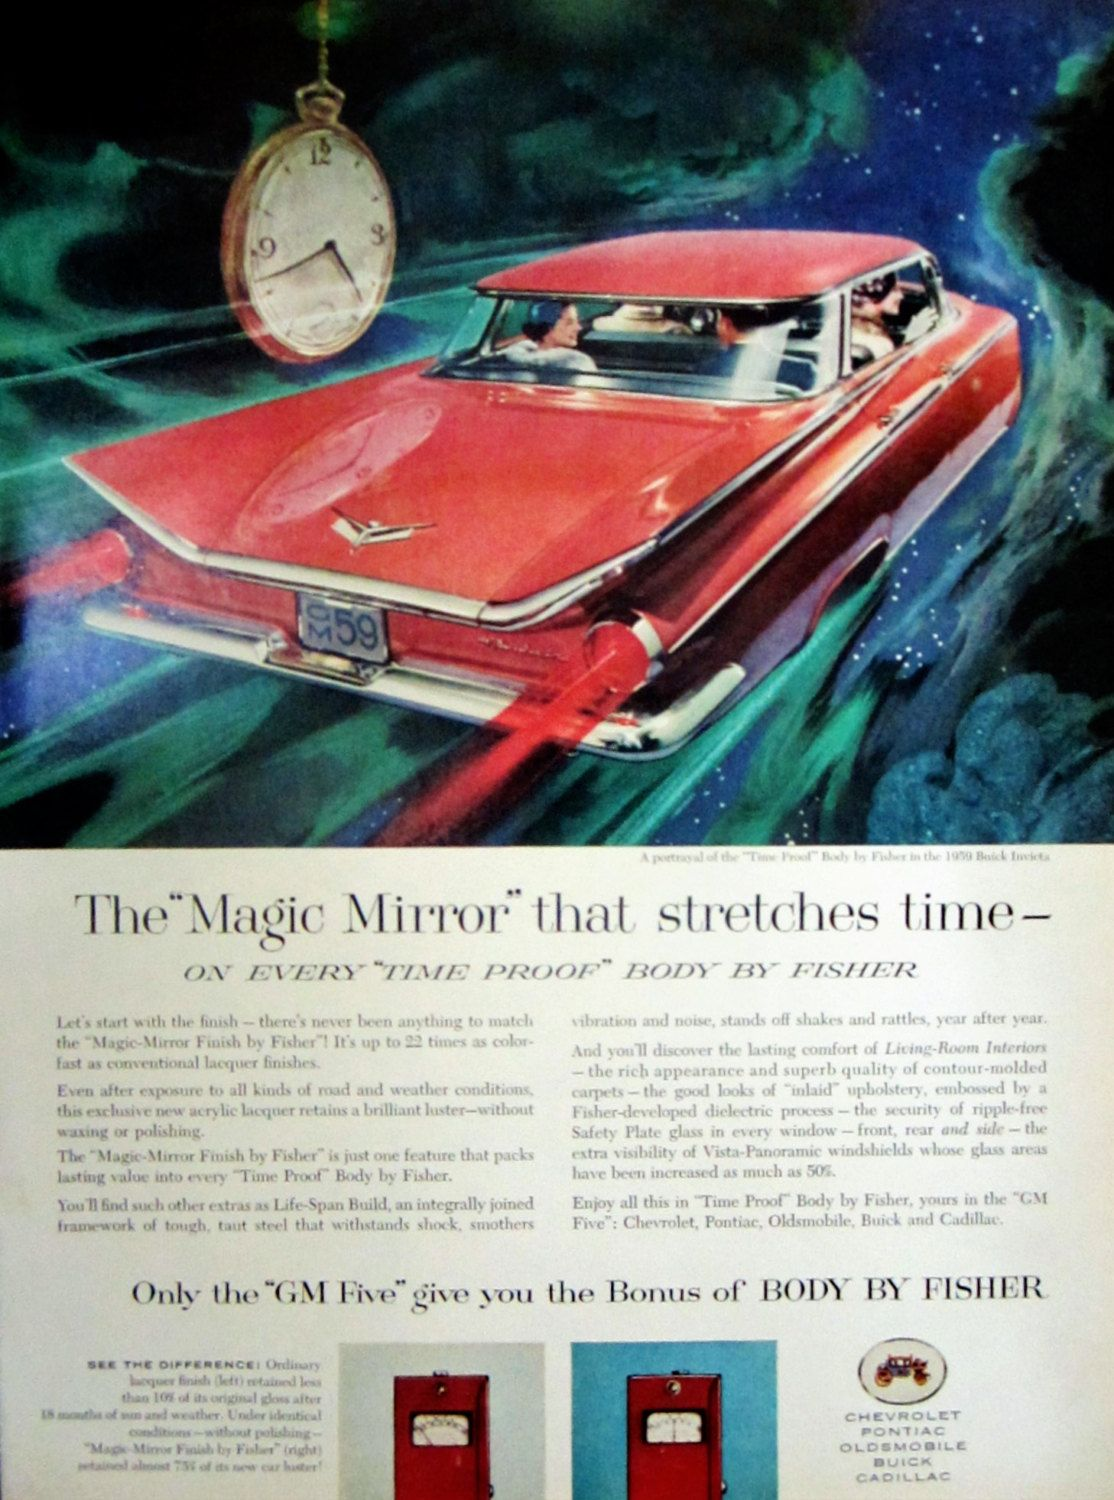 1958 59 buick invicta gm body by fisher vintage advertisement 1958 59 buick invicta gm body by fisher vintage advertisement classic car automotive wall art fandeluxe